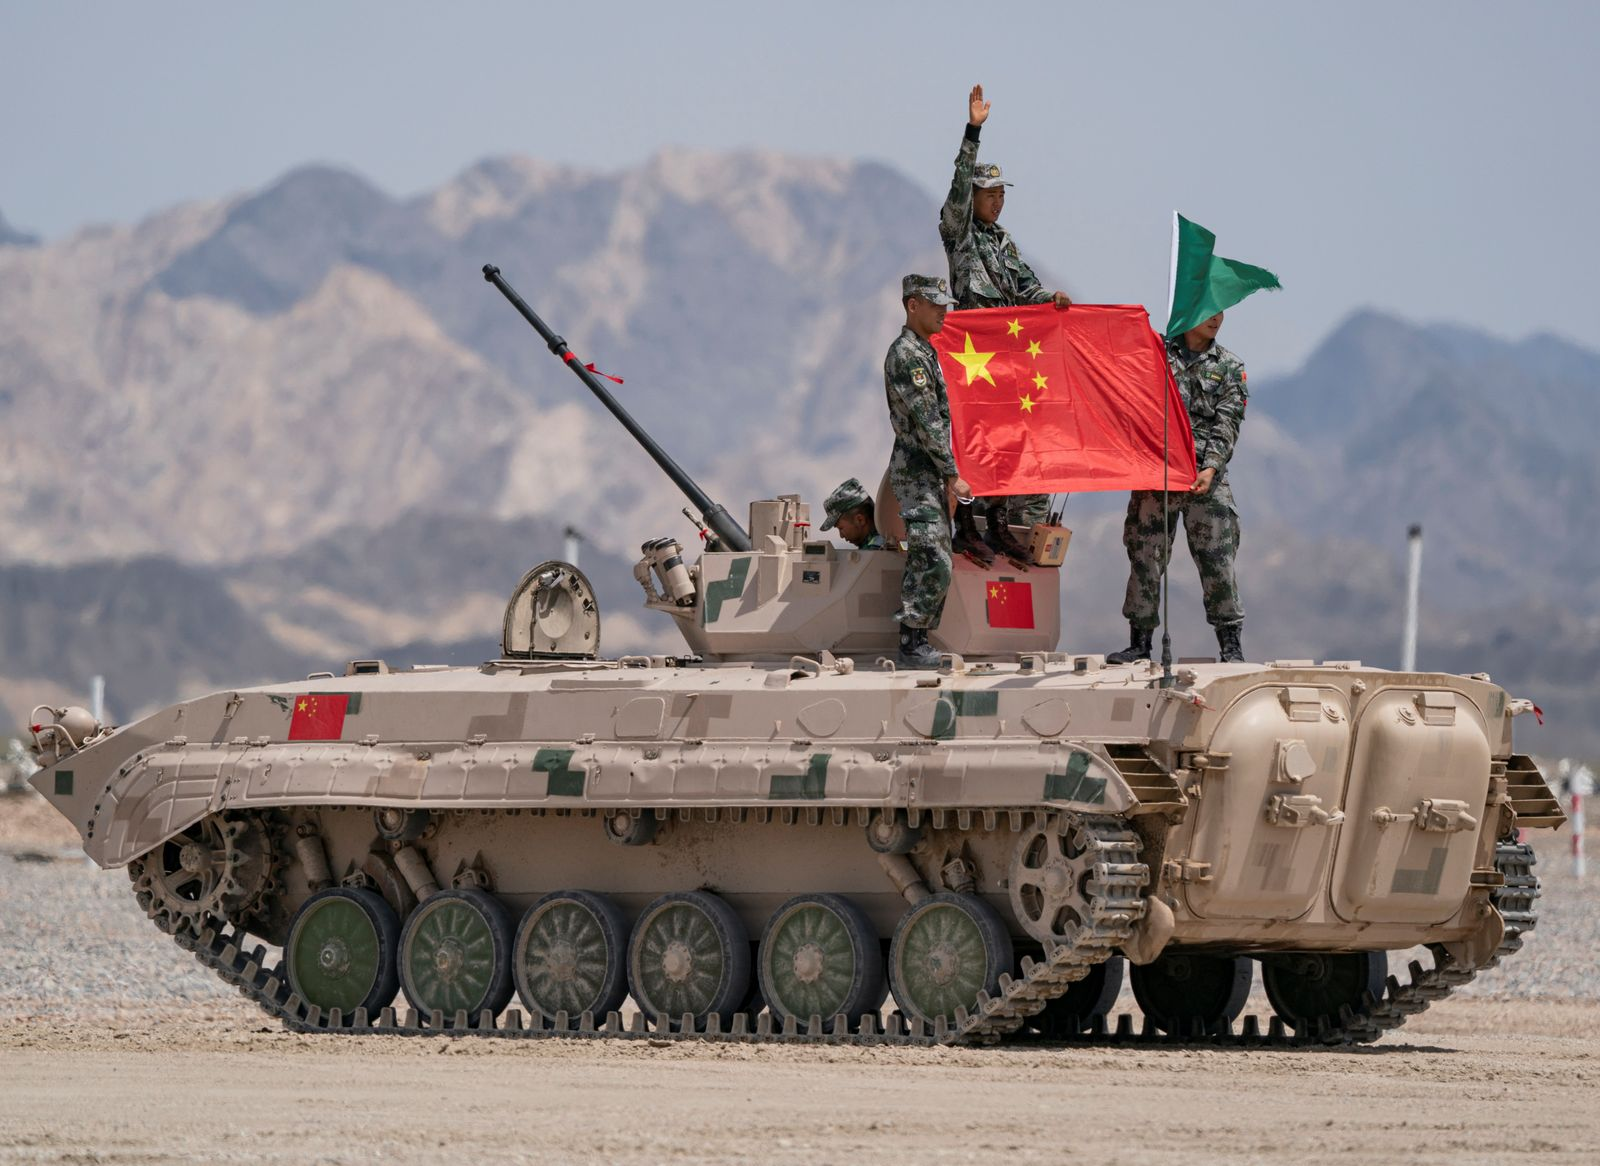 nationalinterest.org: What Has Not Changed in U.S.-China Relations